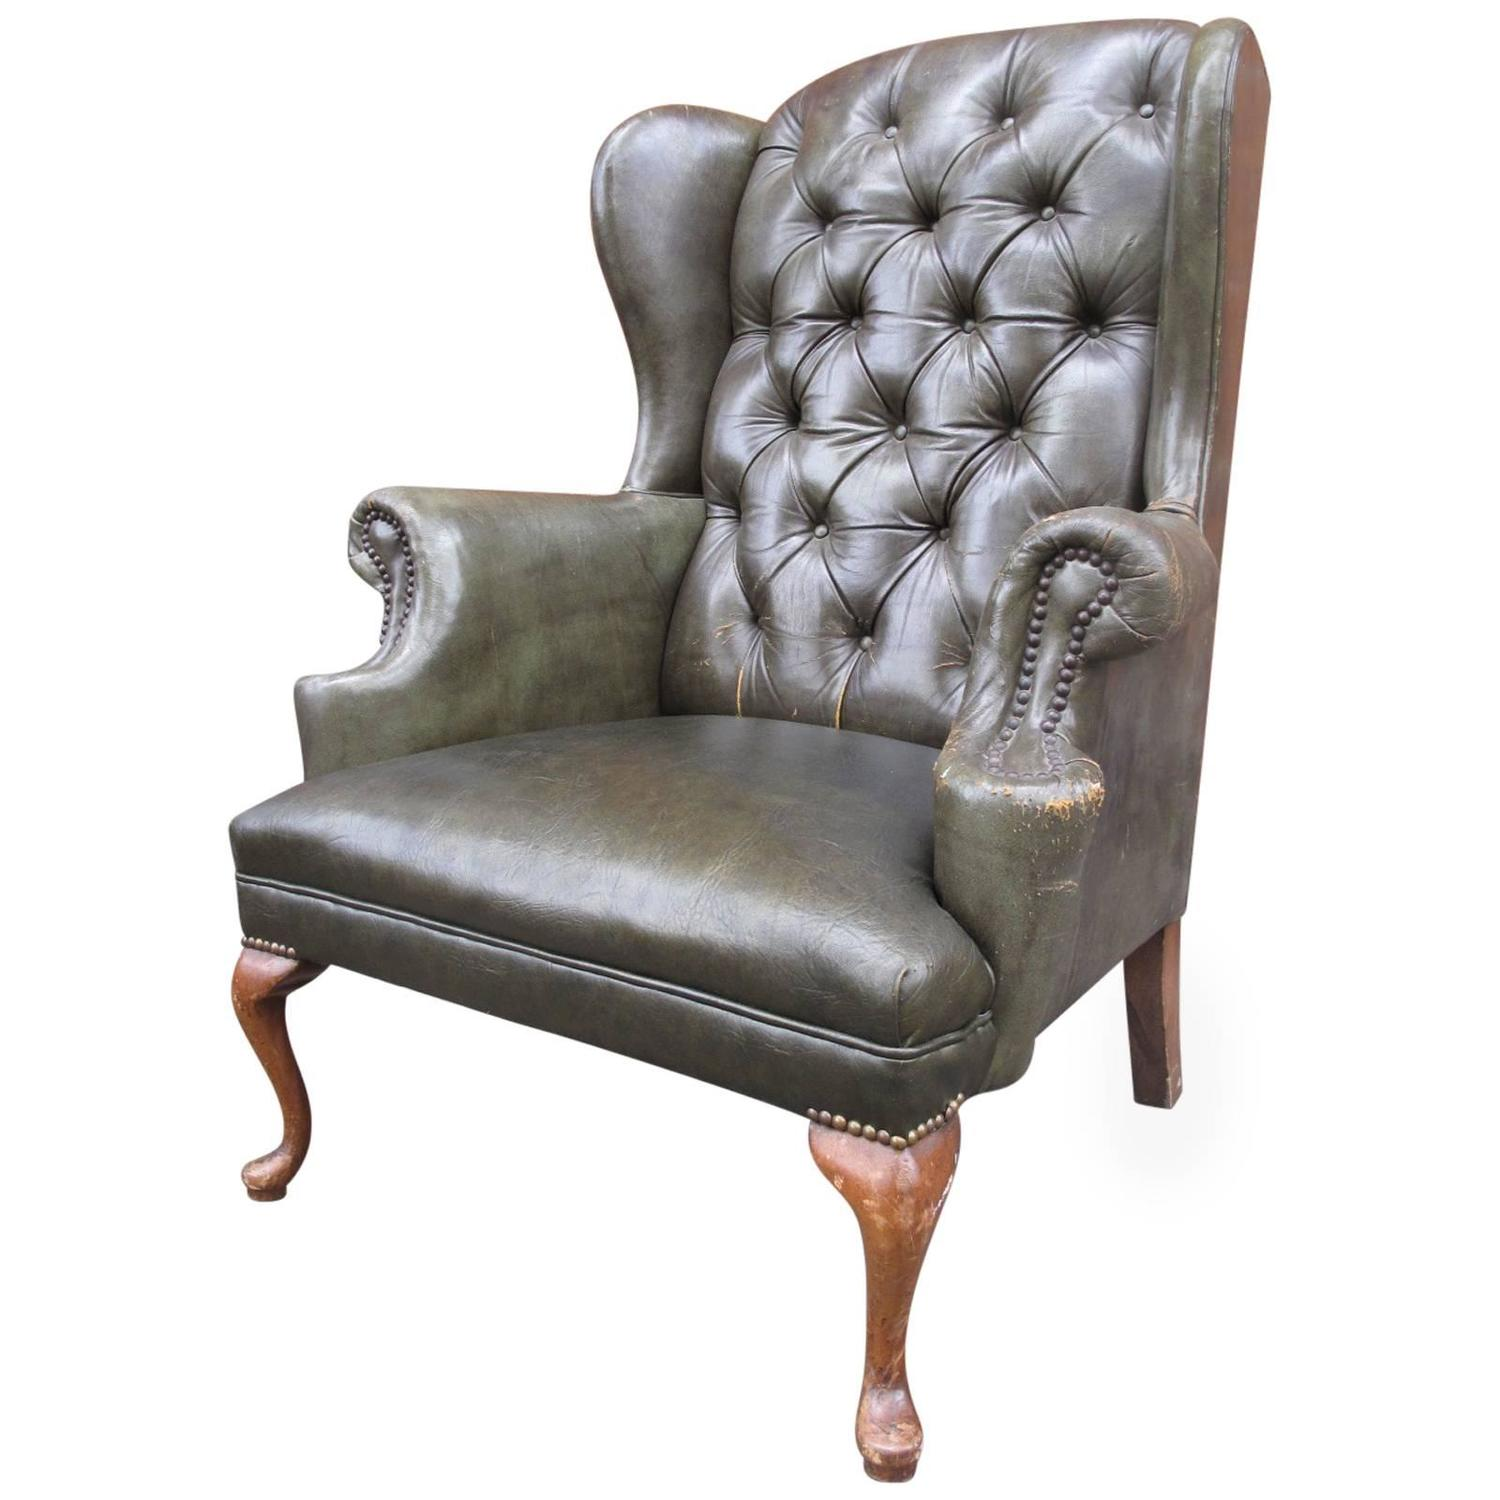 Queen Anne Wingback Chair Queen Anne Tufted Leather Wingback Chair At 1stdibs